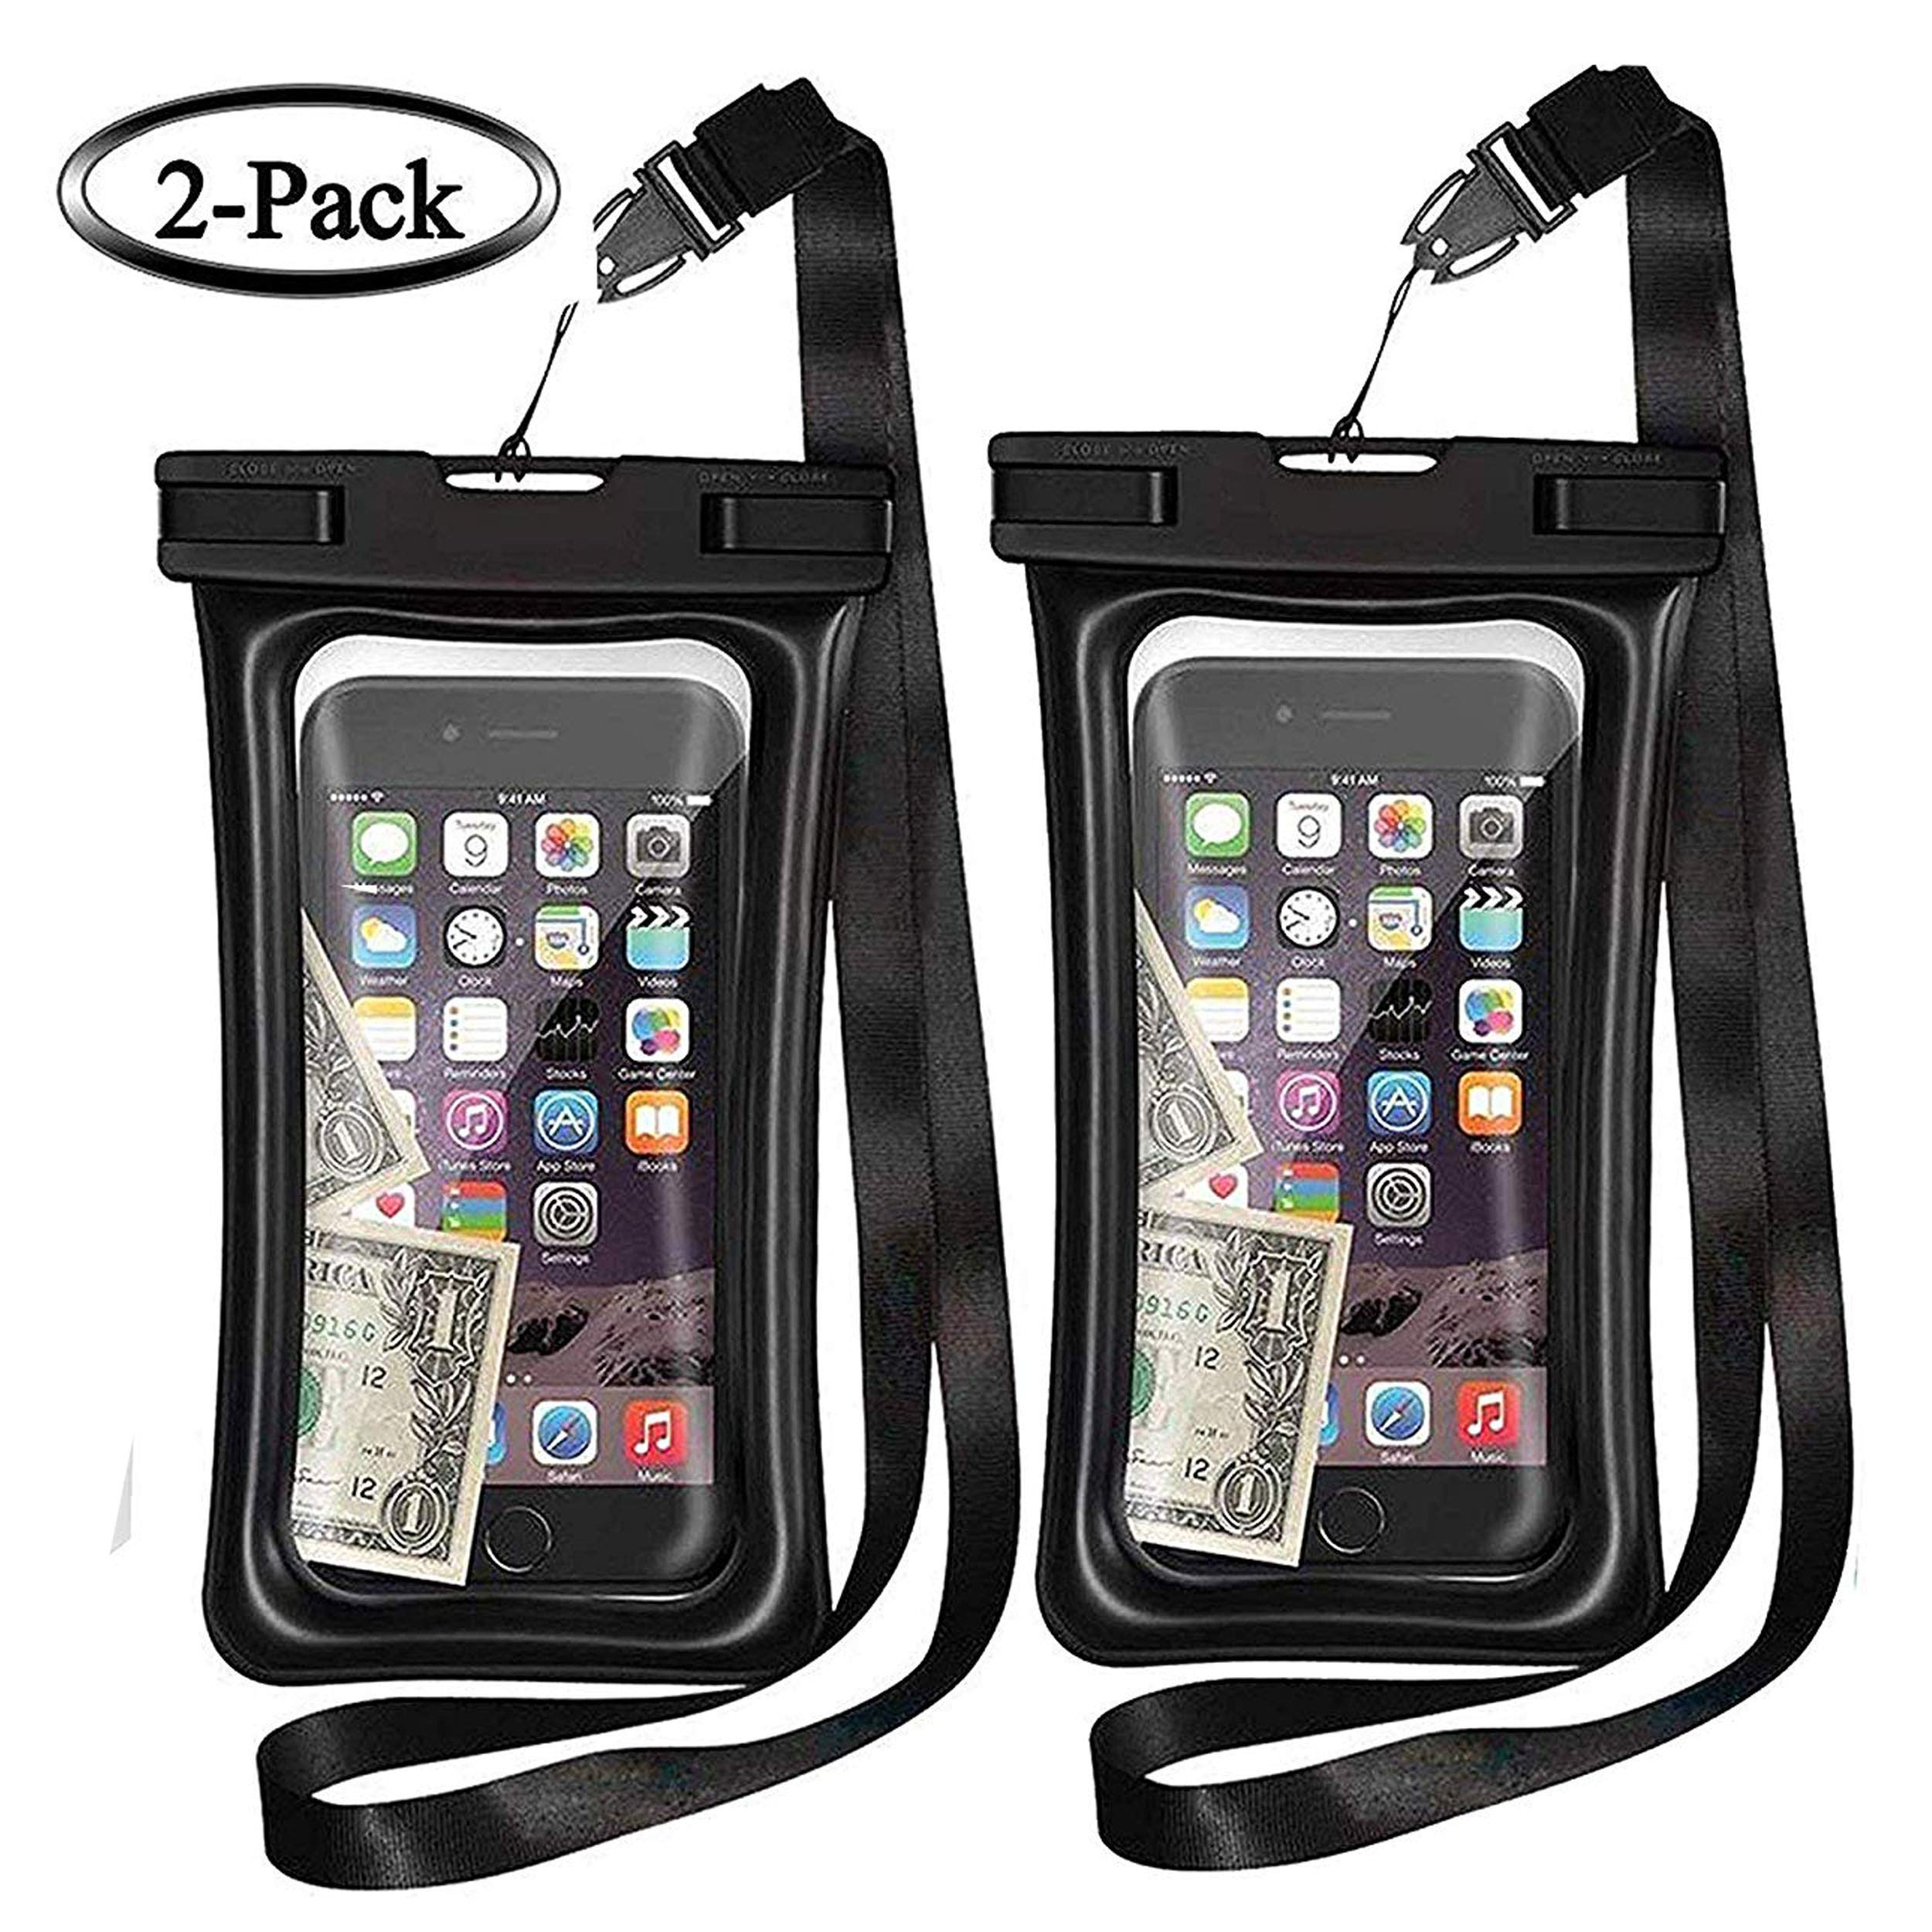 MQOUNY Waterproof Phone Pouch,2 Pack Floating Waterproof Case Waterproof Phone Case IPX8 Available TPU Clear Dry Bag for iPhoneXs/Xs Max/XR/8/8plus/7/6s/6/6s Plus Samsung up to 6.5 inch (Black-Black) by MQOUNY